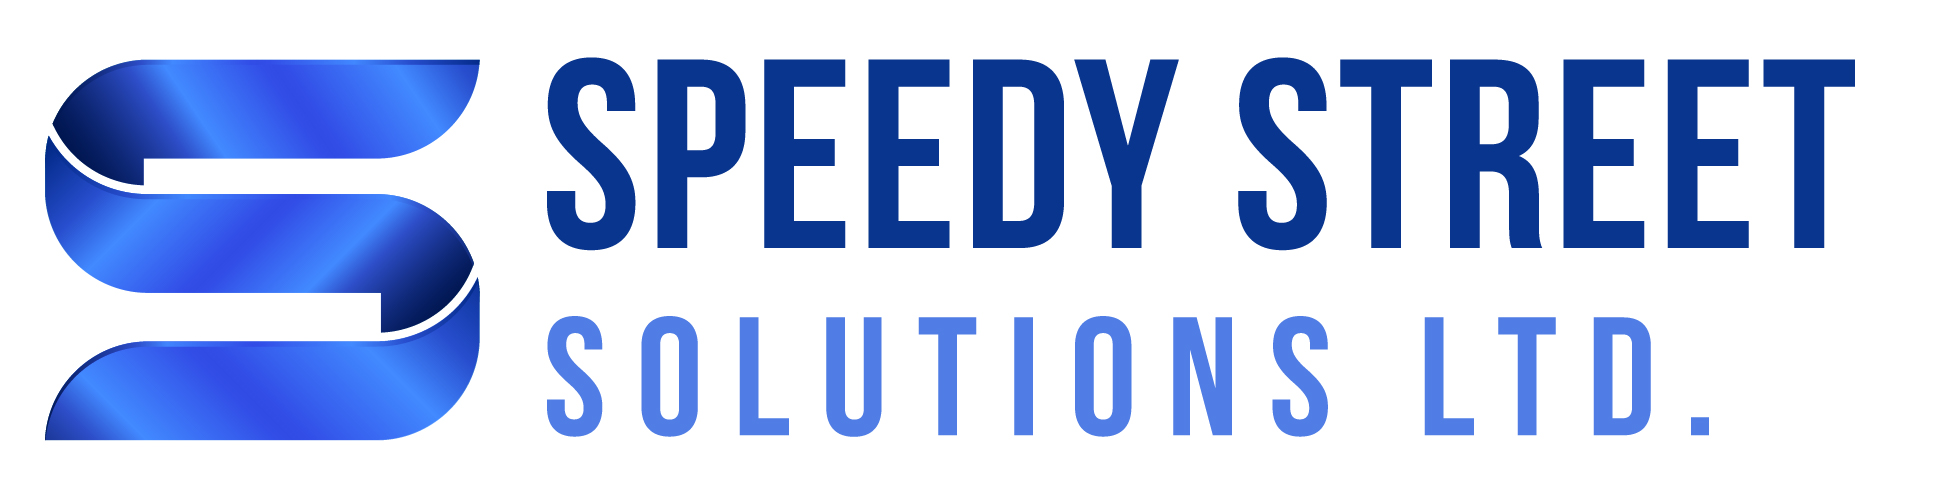 Speedy Street Solutions